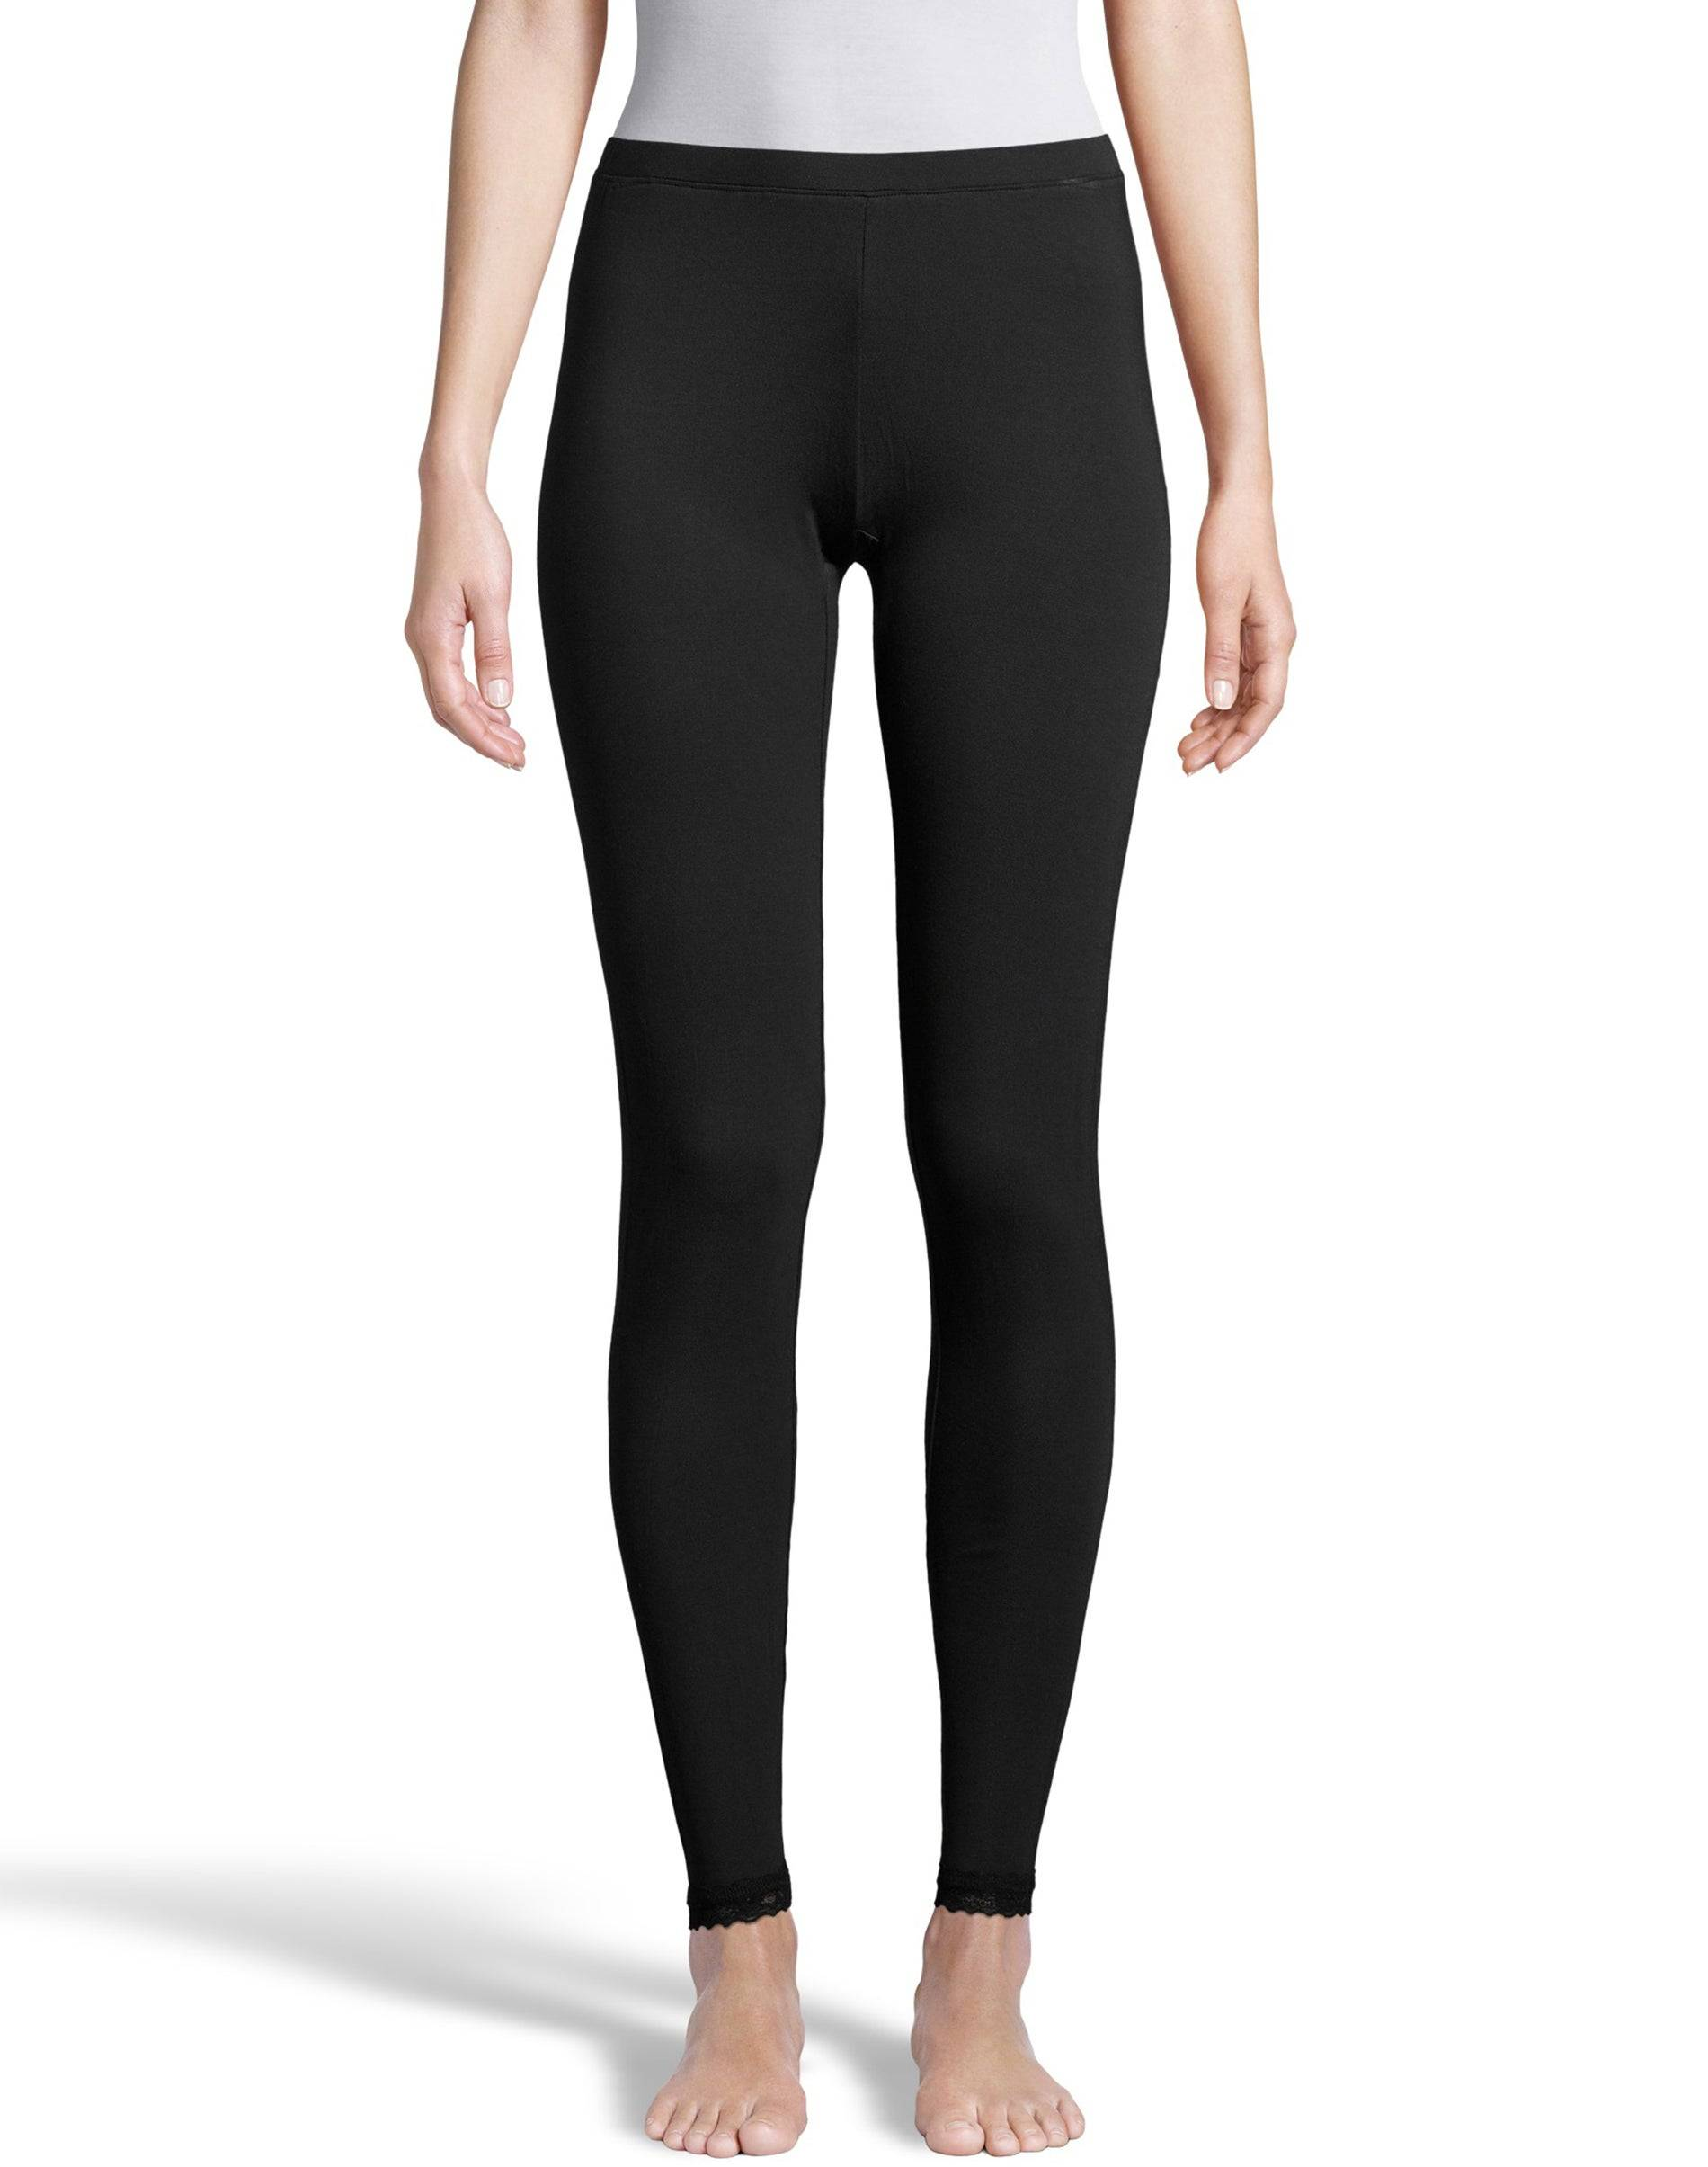 Hanes Women's Comfort Collection Thermal Pant Black L